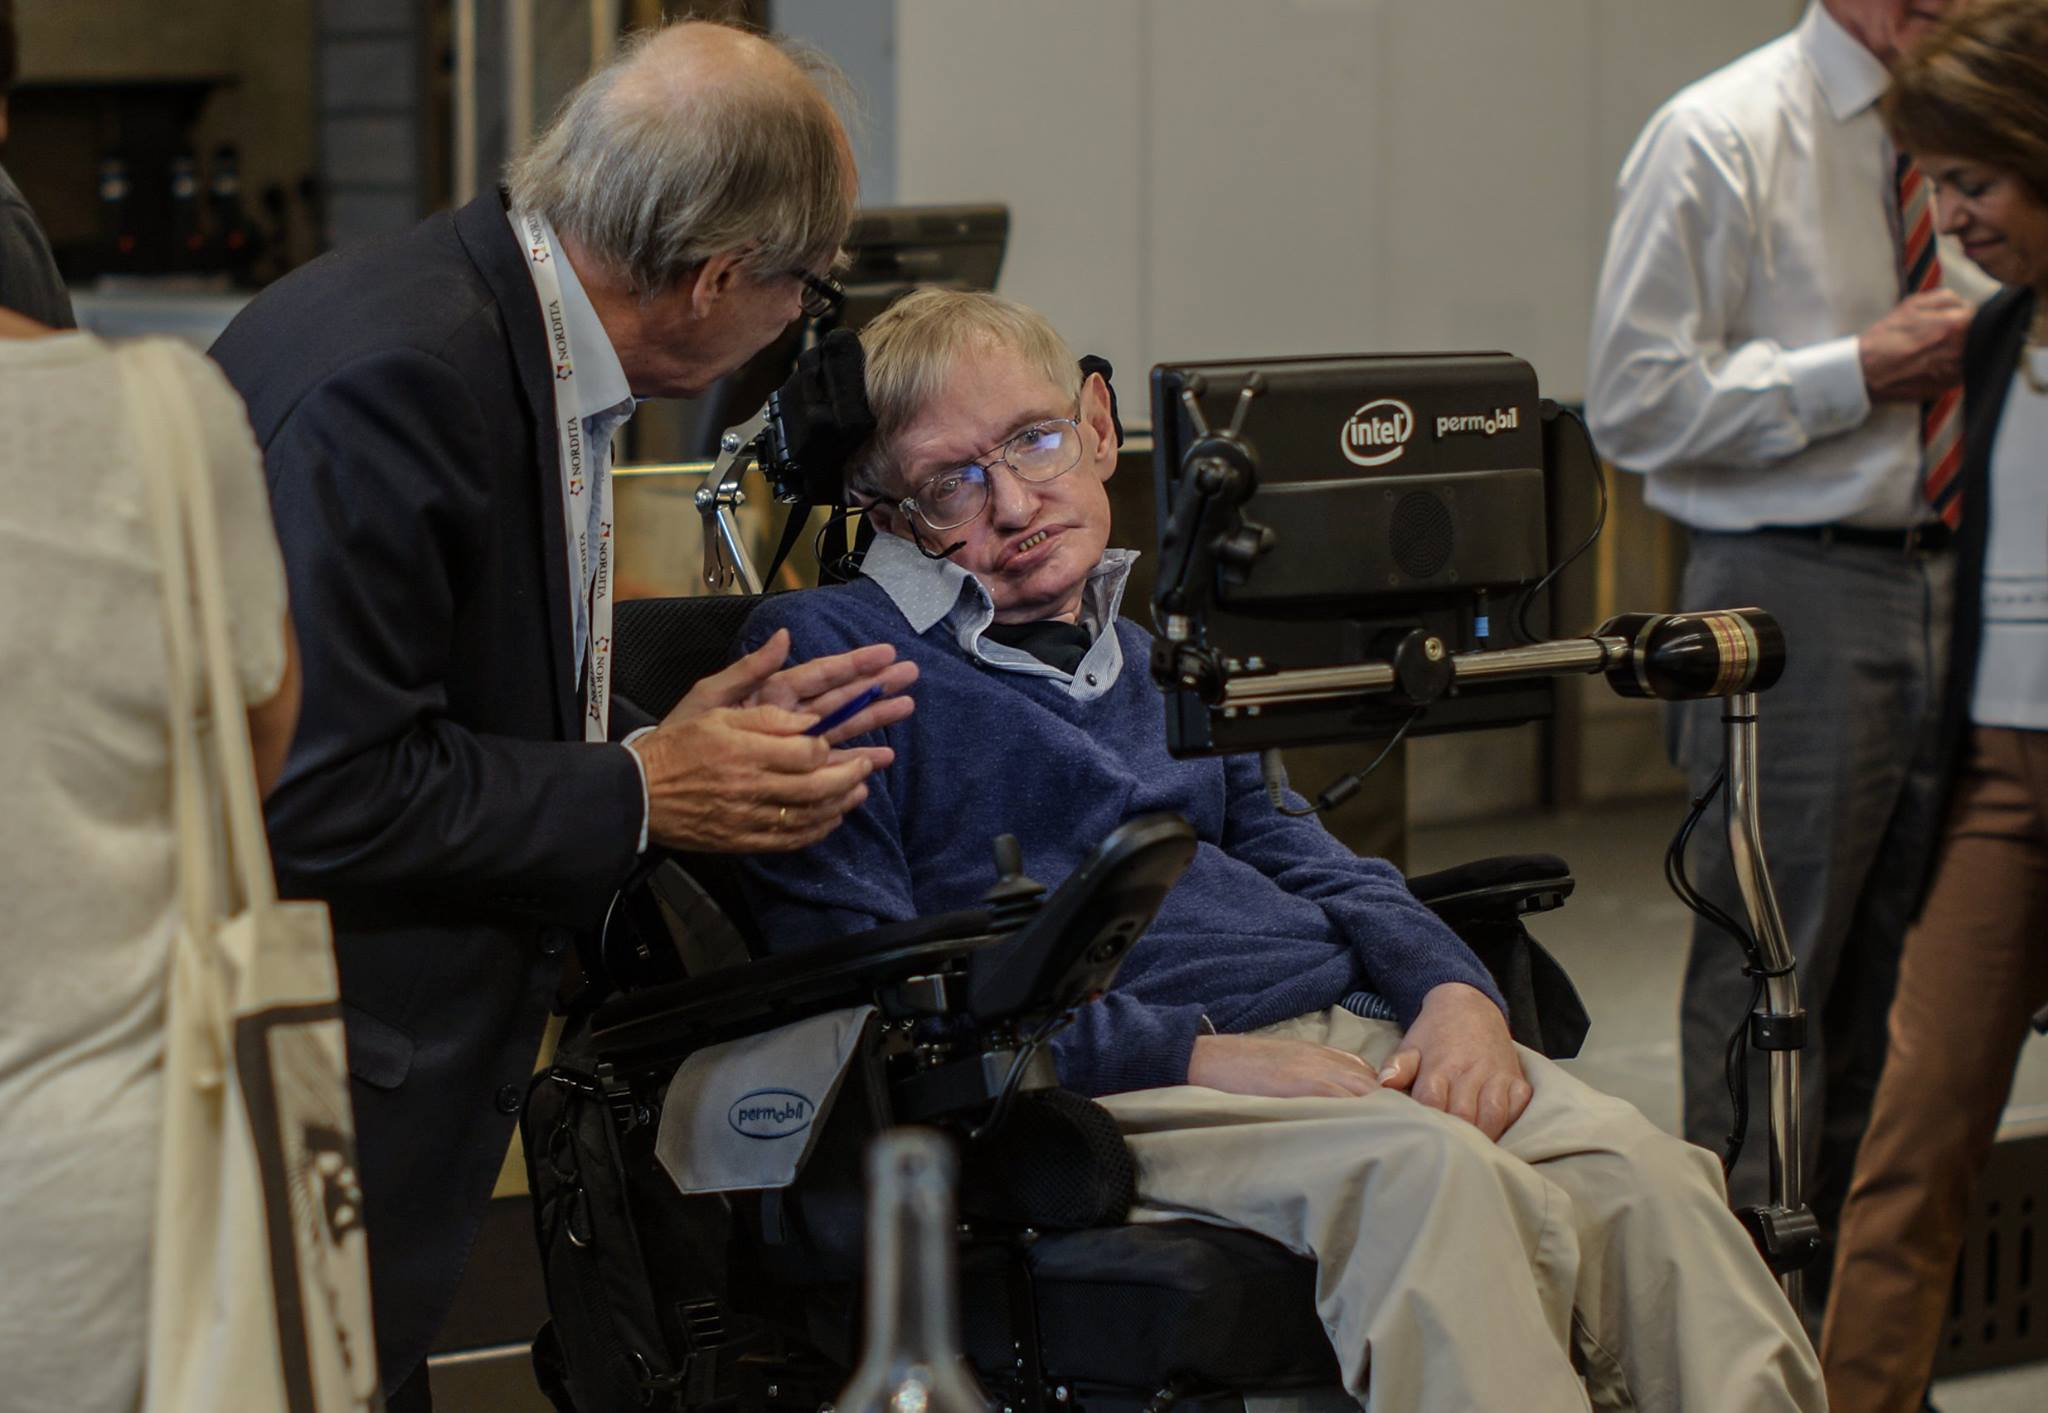 Stephen Hawking and Gerard 't Hooft   discussing on the information paradox